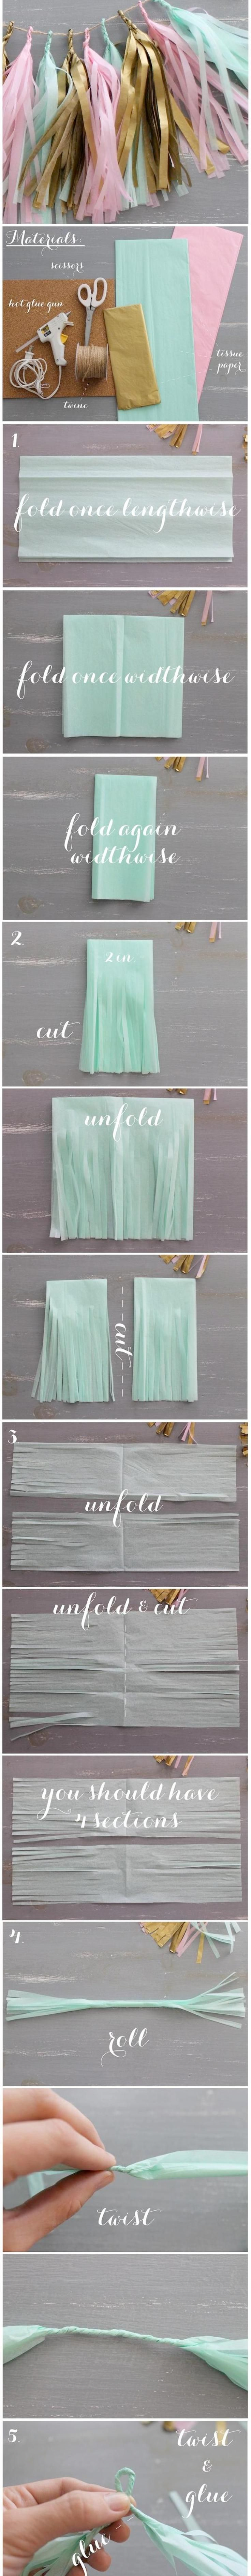 DIY Tassel Garland in pretty pastels. Perfect for any celebration from baby showers to first birthday parties.